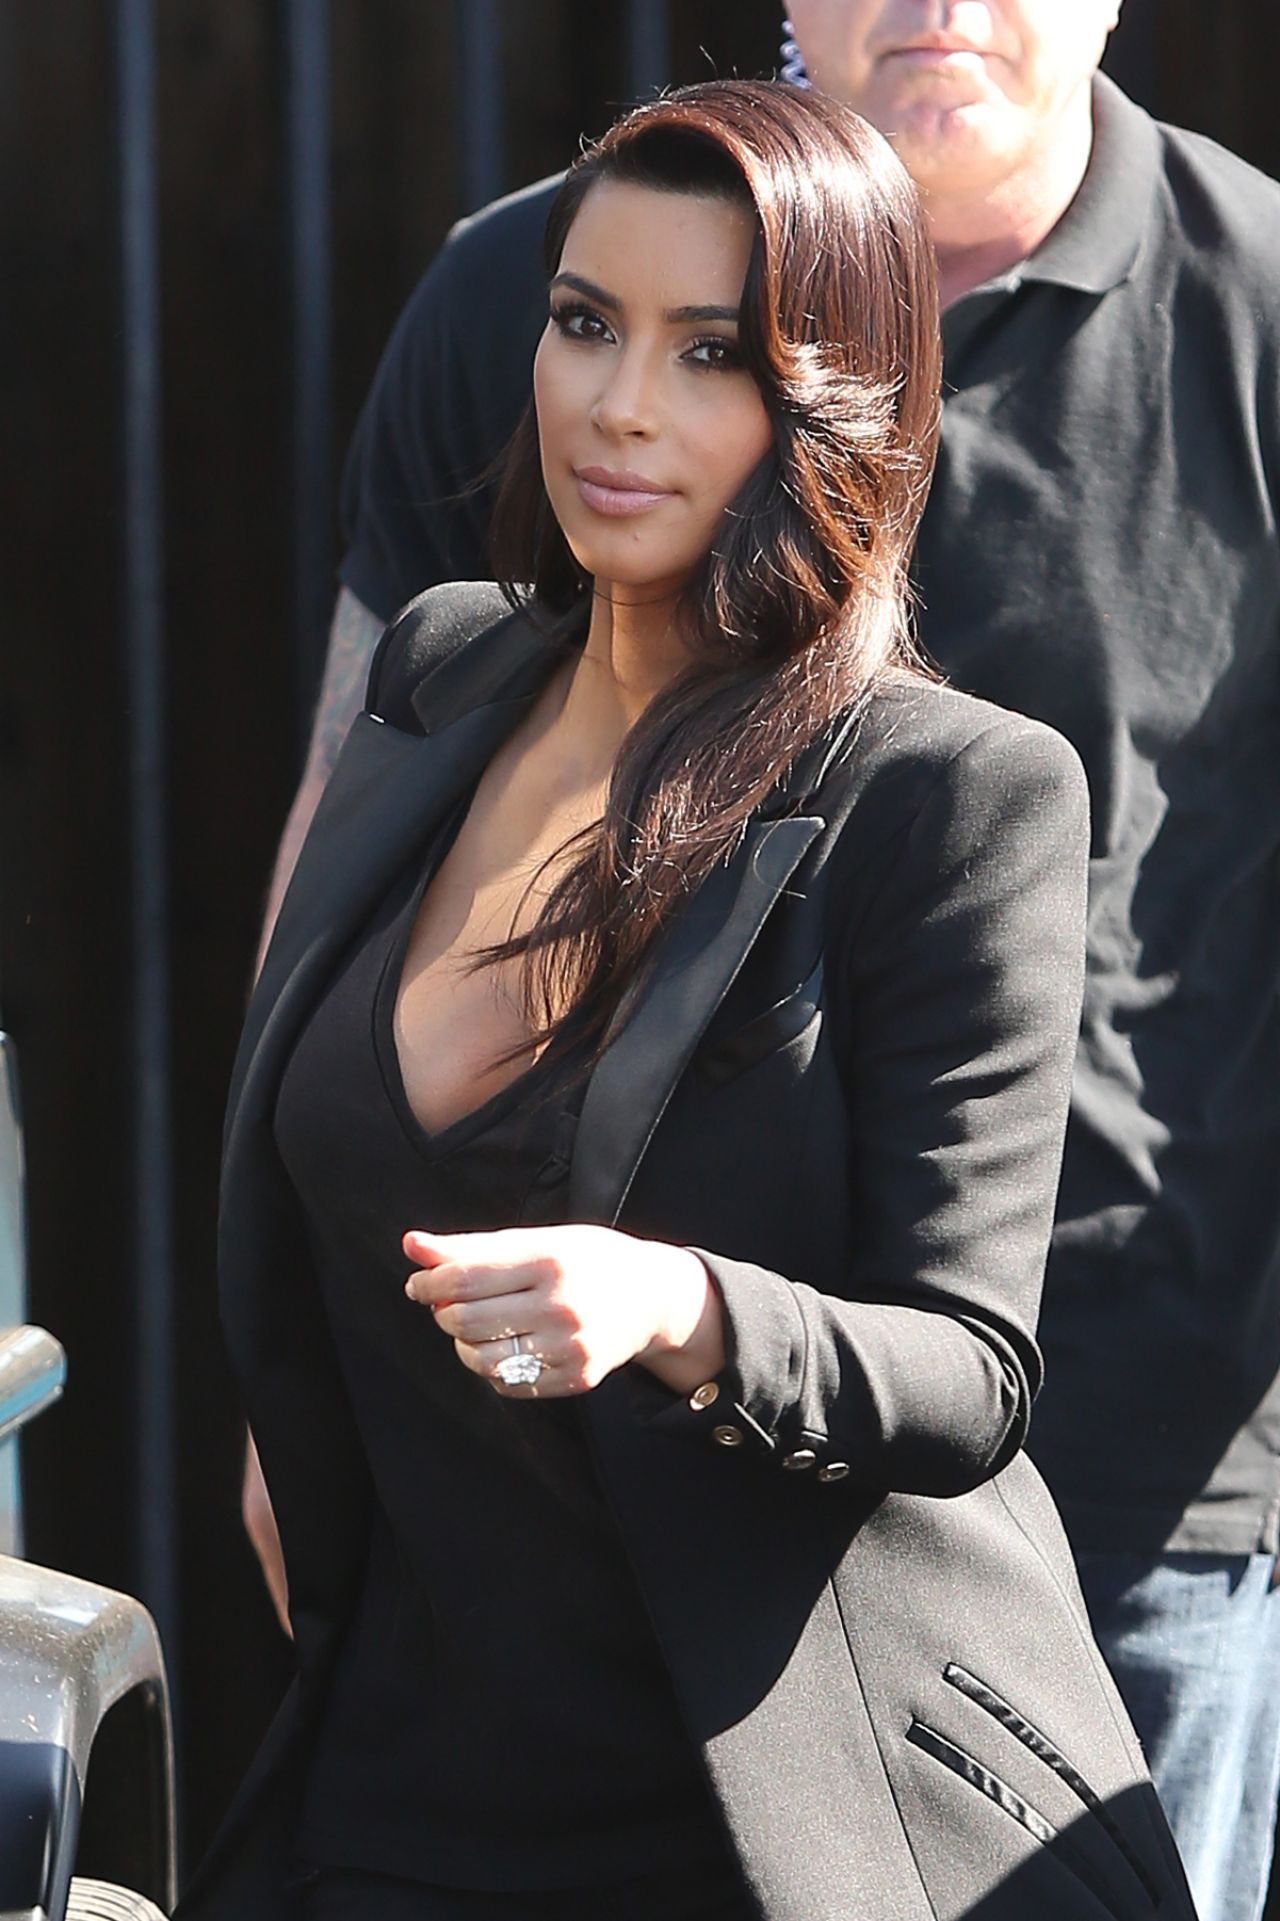 Kim Kardashian - Leaving a Studio in Los Angeles - April 2014